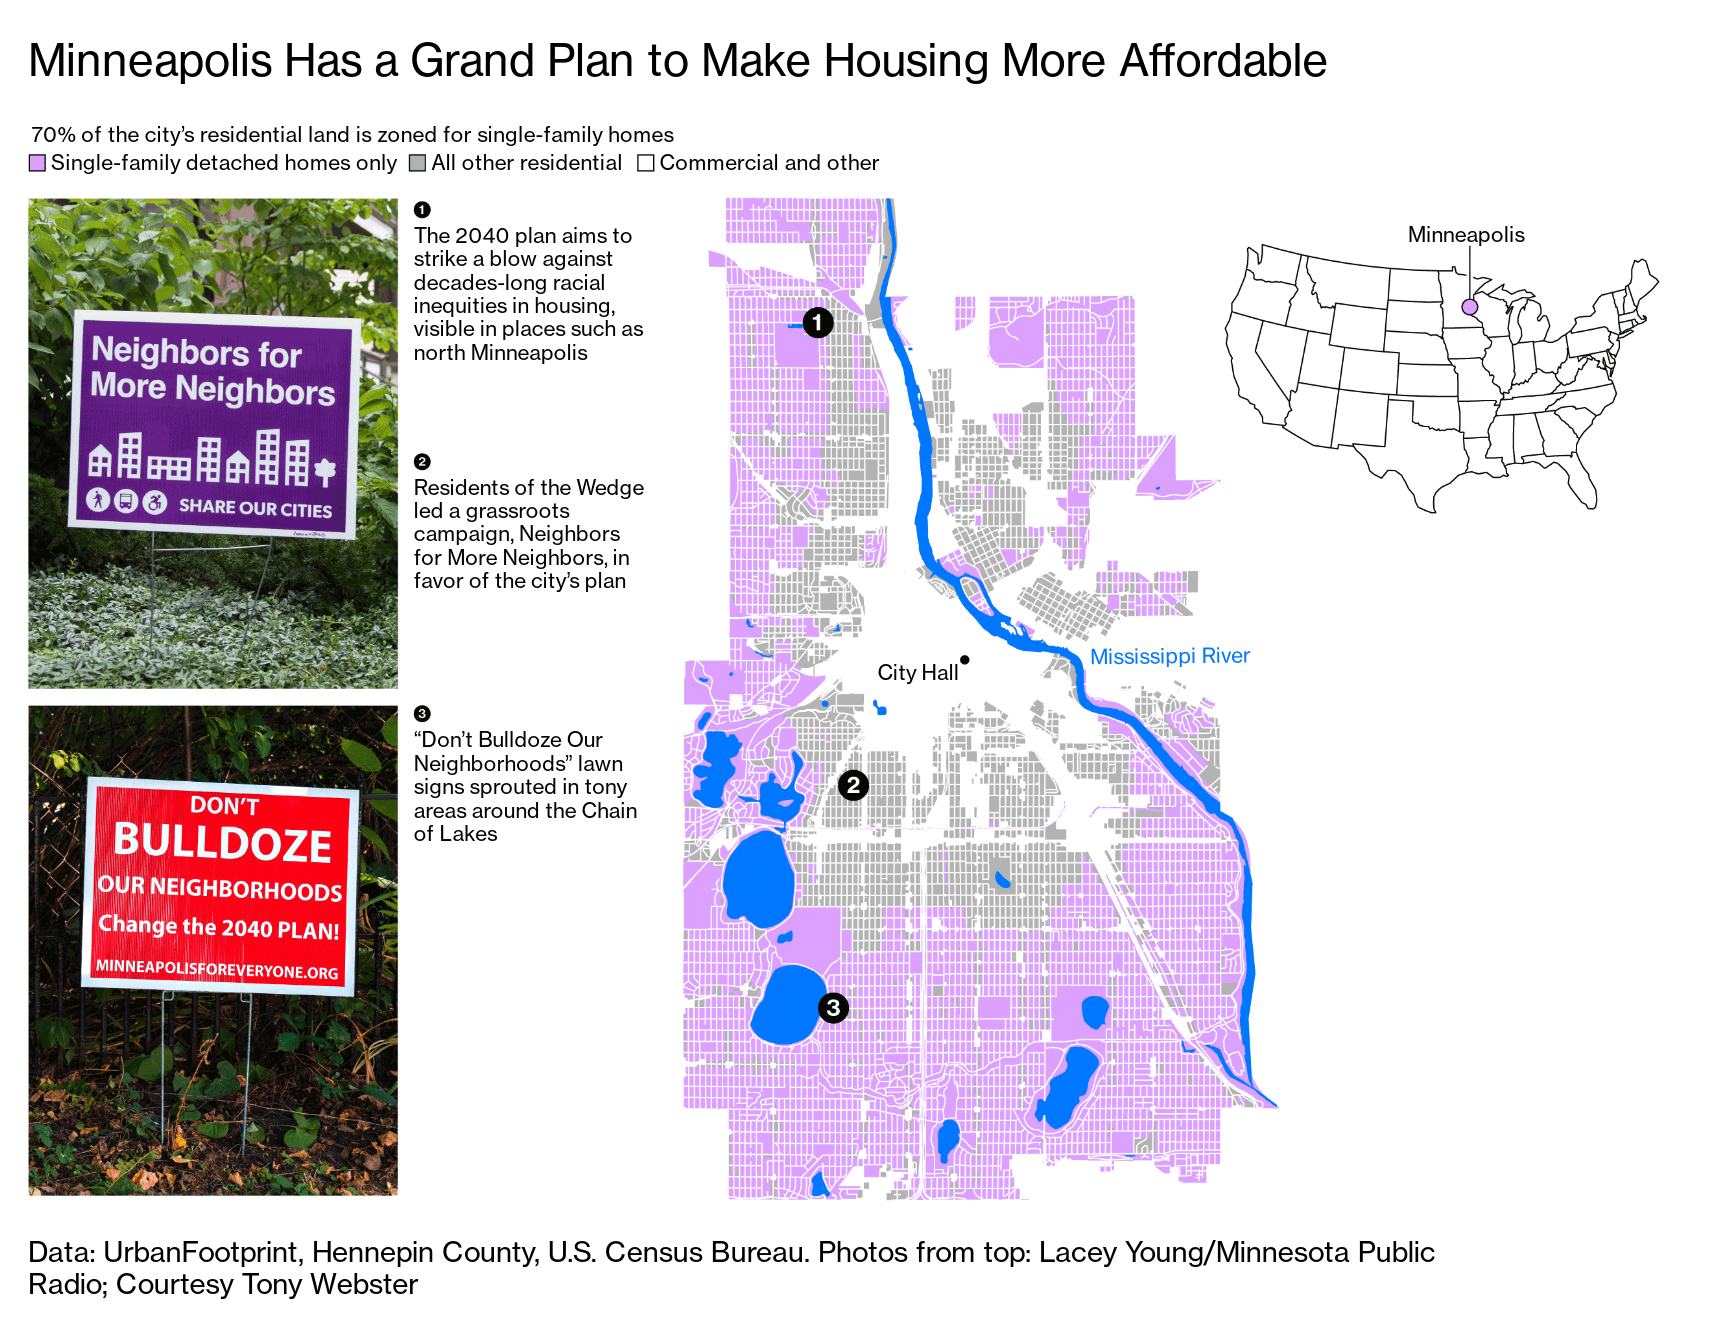 To Fix Its Housing Crunch, One U S  City Takes Aim at the